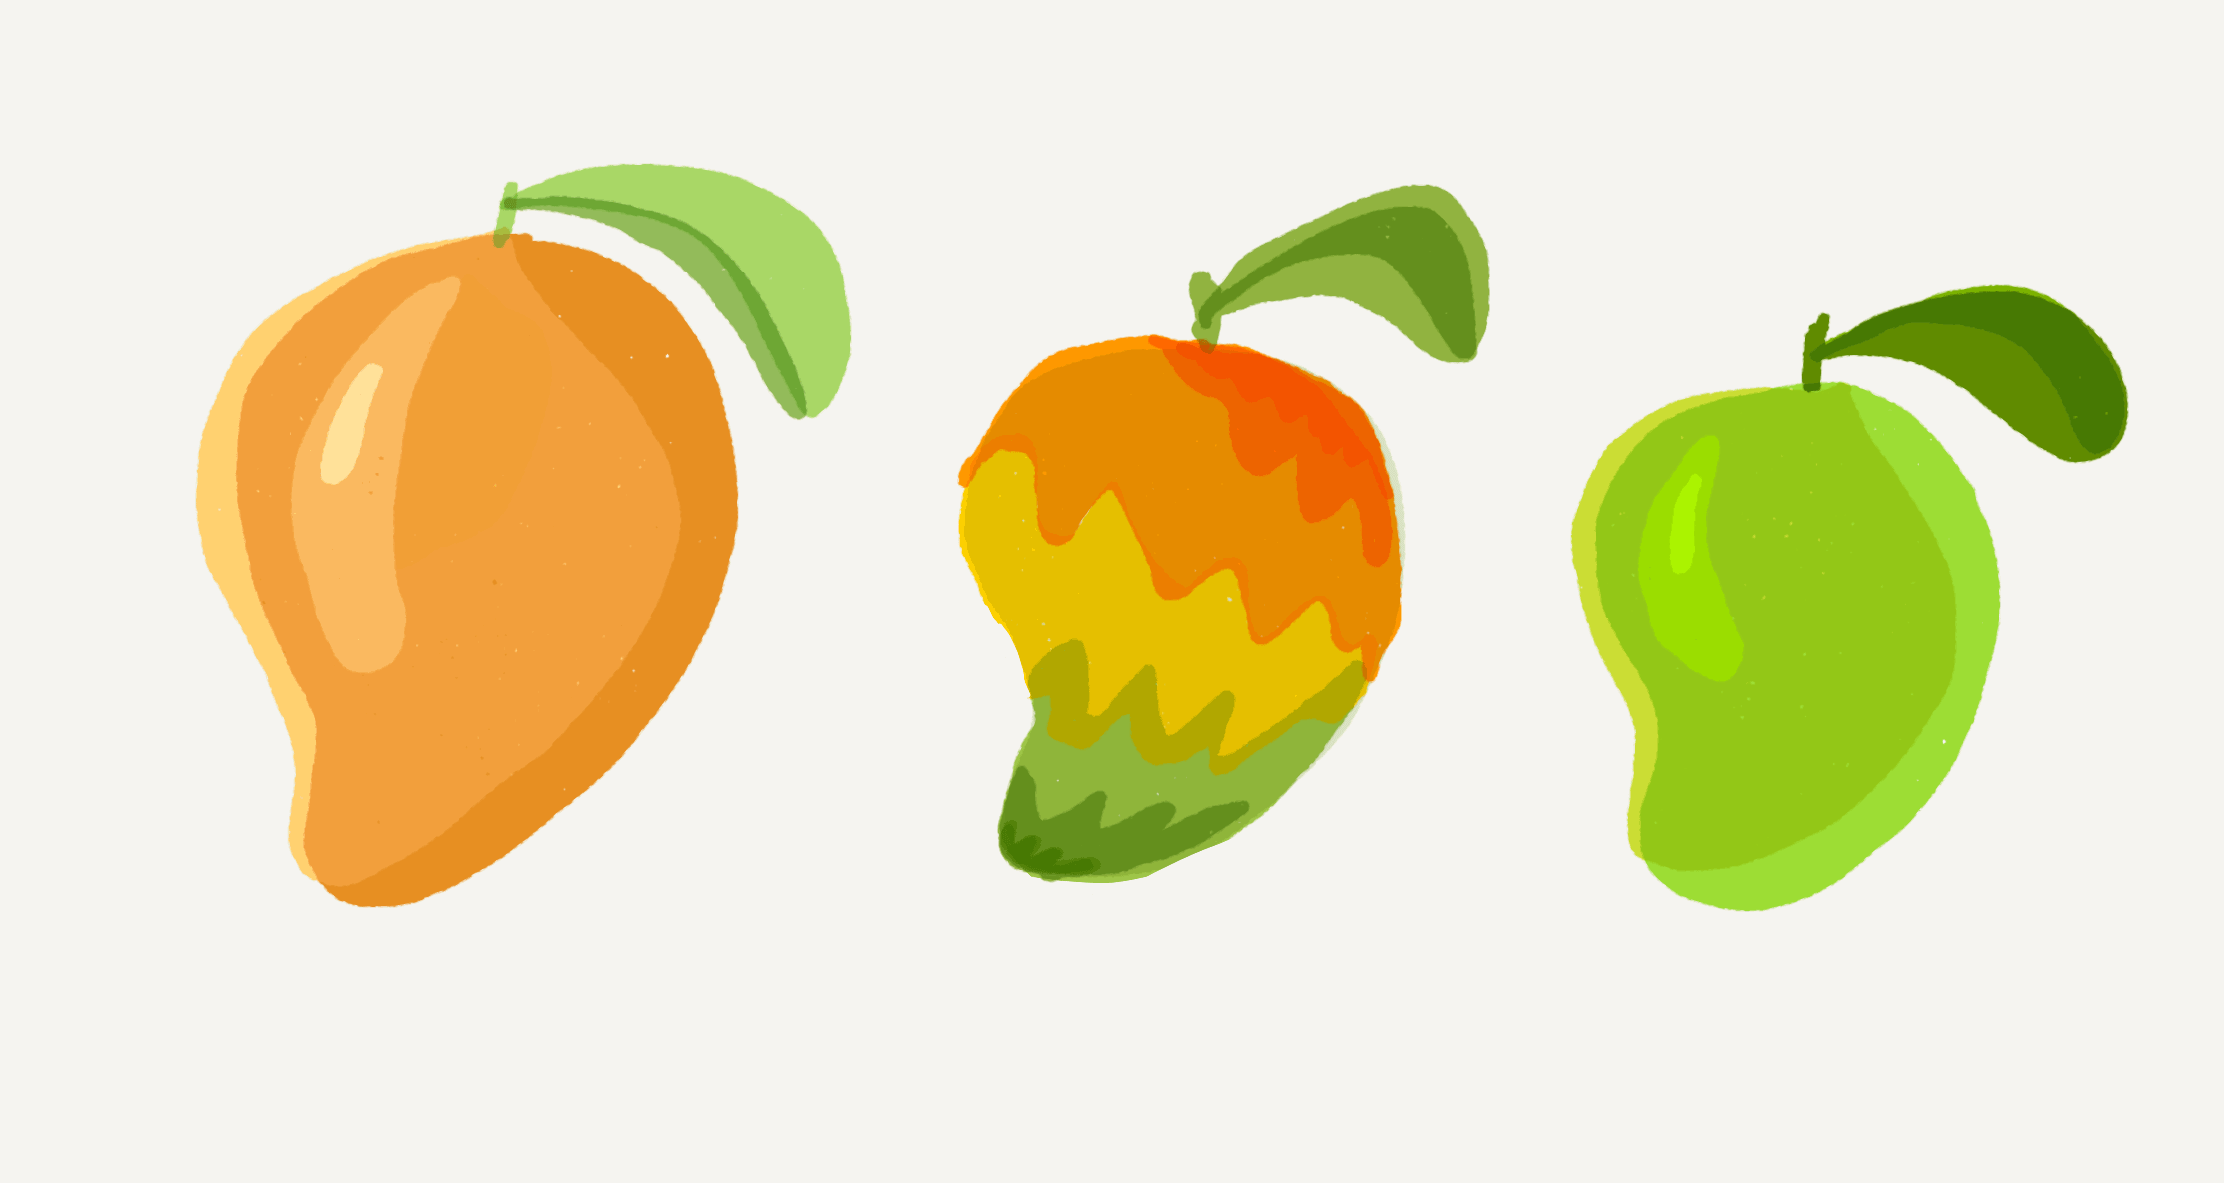 A wide array of mangoes